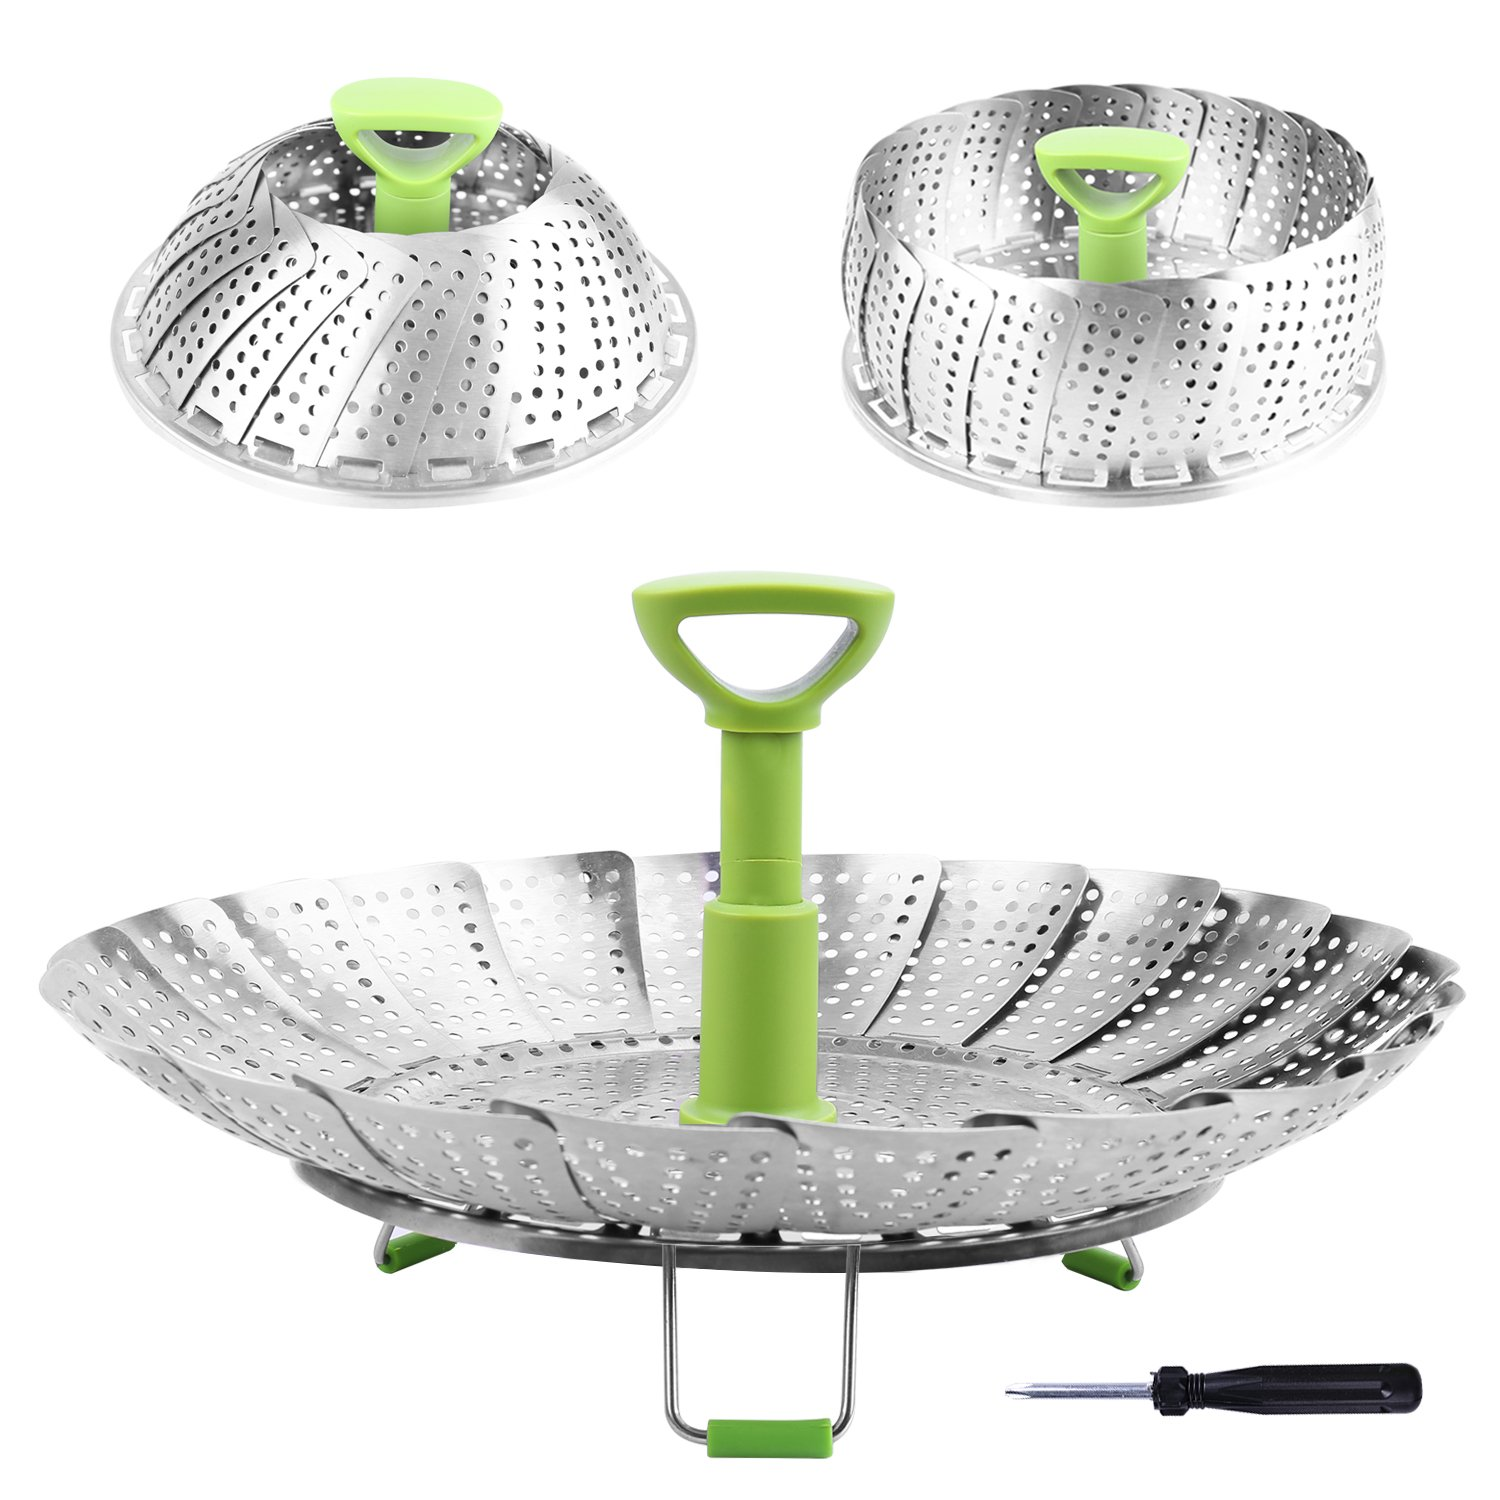 Steamer Basket Stainless Steel Vegetable Steamer Basket Folding Steamer Insert for Veggie Fish Seafood Cooking, Expandable to Fit Various Size Pot (5.1'' to 9'') by Consevisen (Image #1)